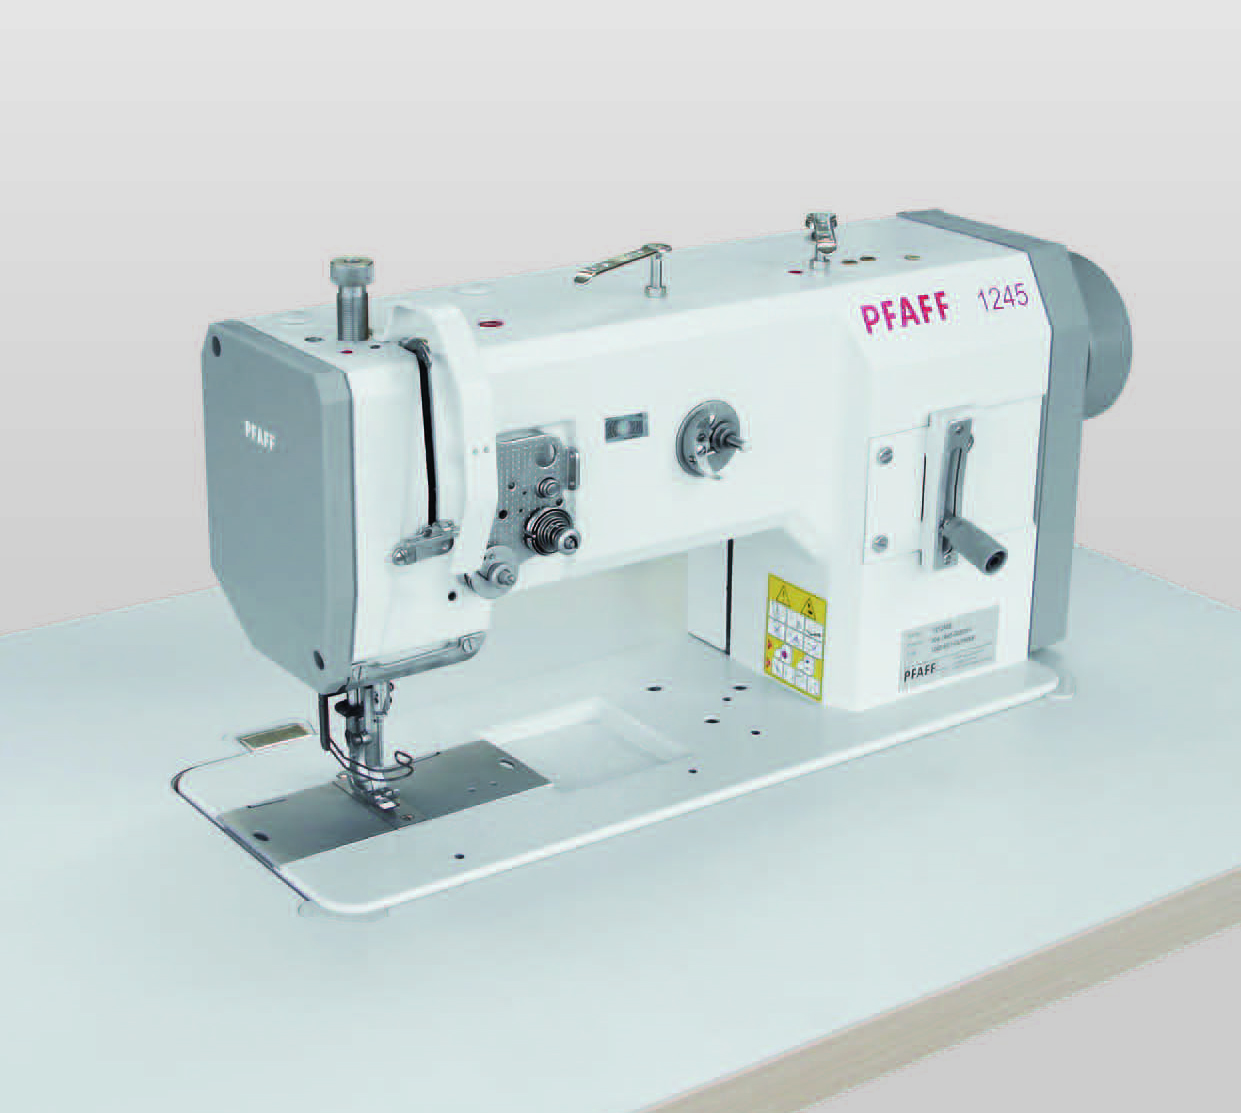 Pfaff 1245 Compound feed heavy duty lock stitch sewing machine